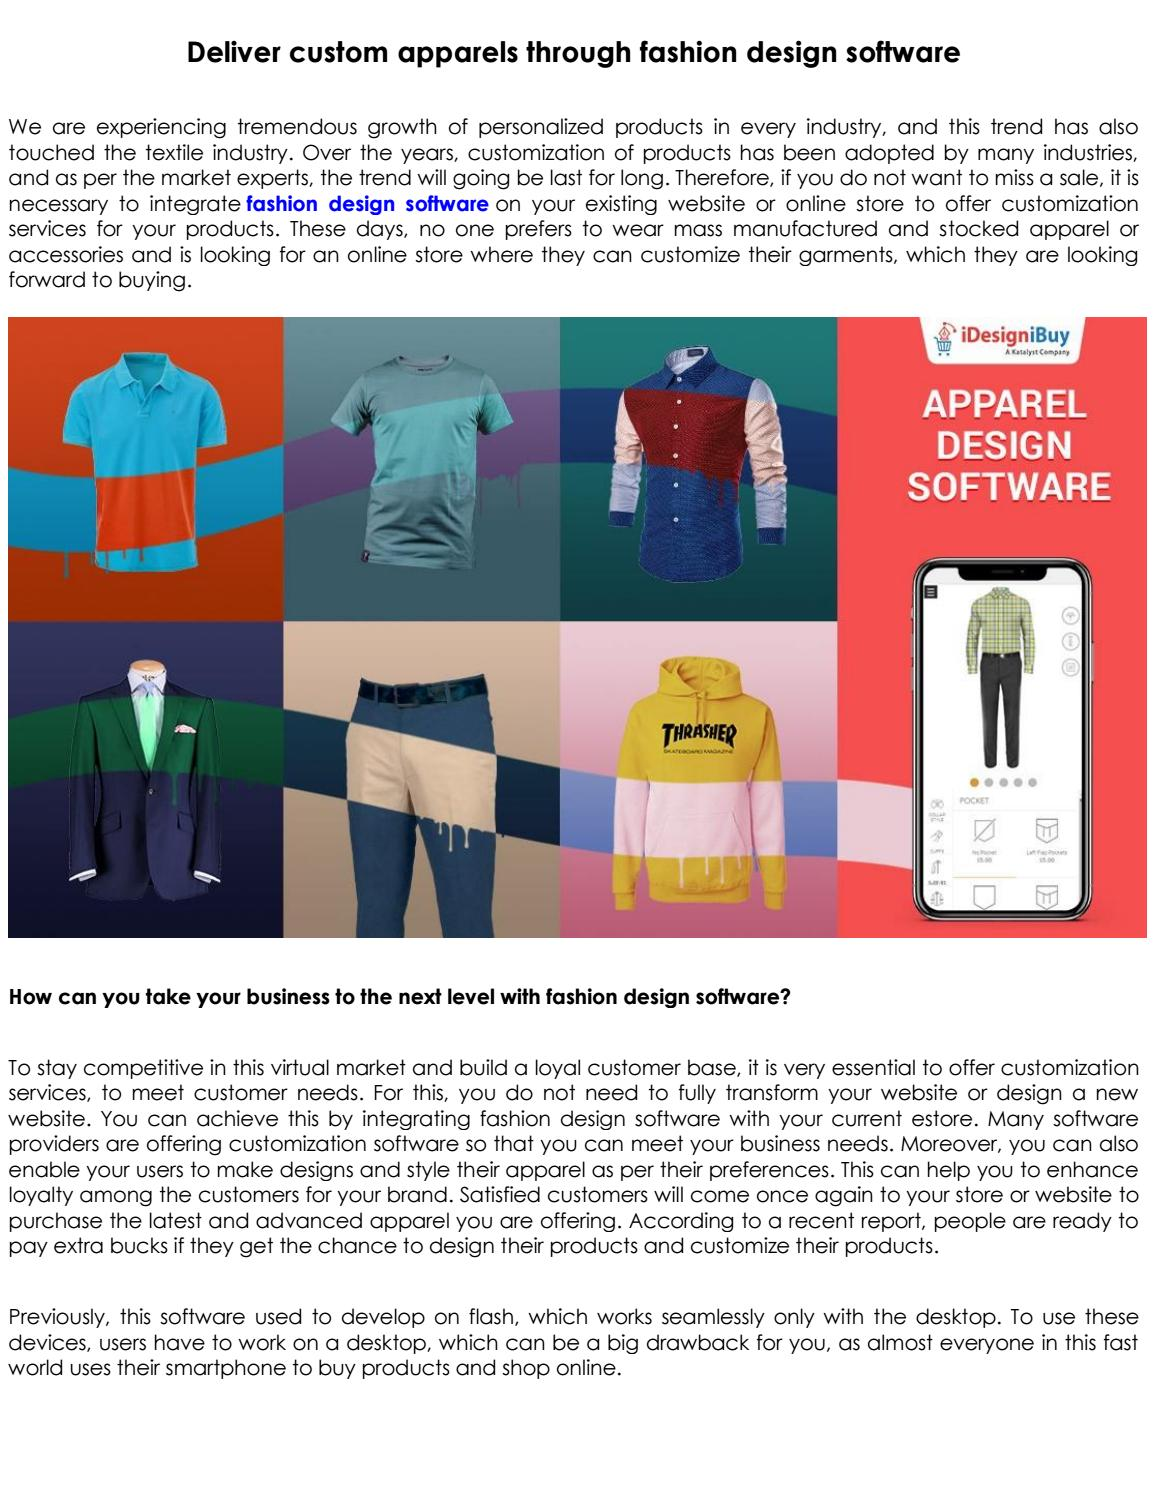 Deliver Custom Apparels Through Fashion Design Software By Idesignibuy Issuu